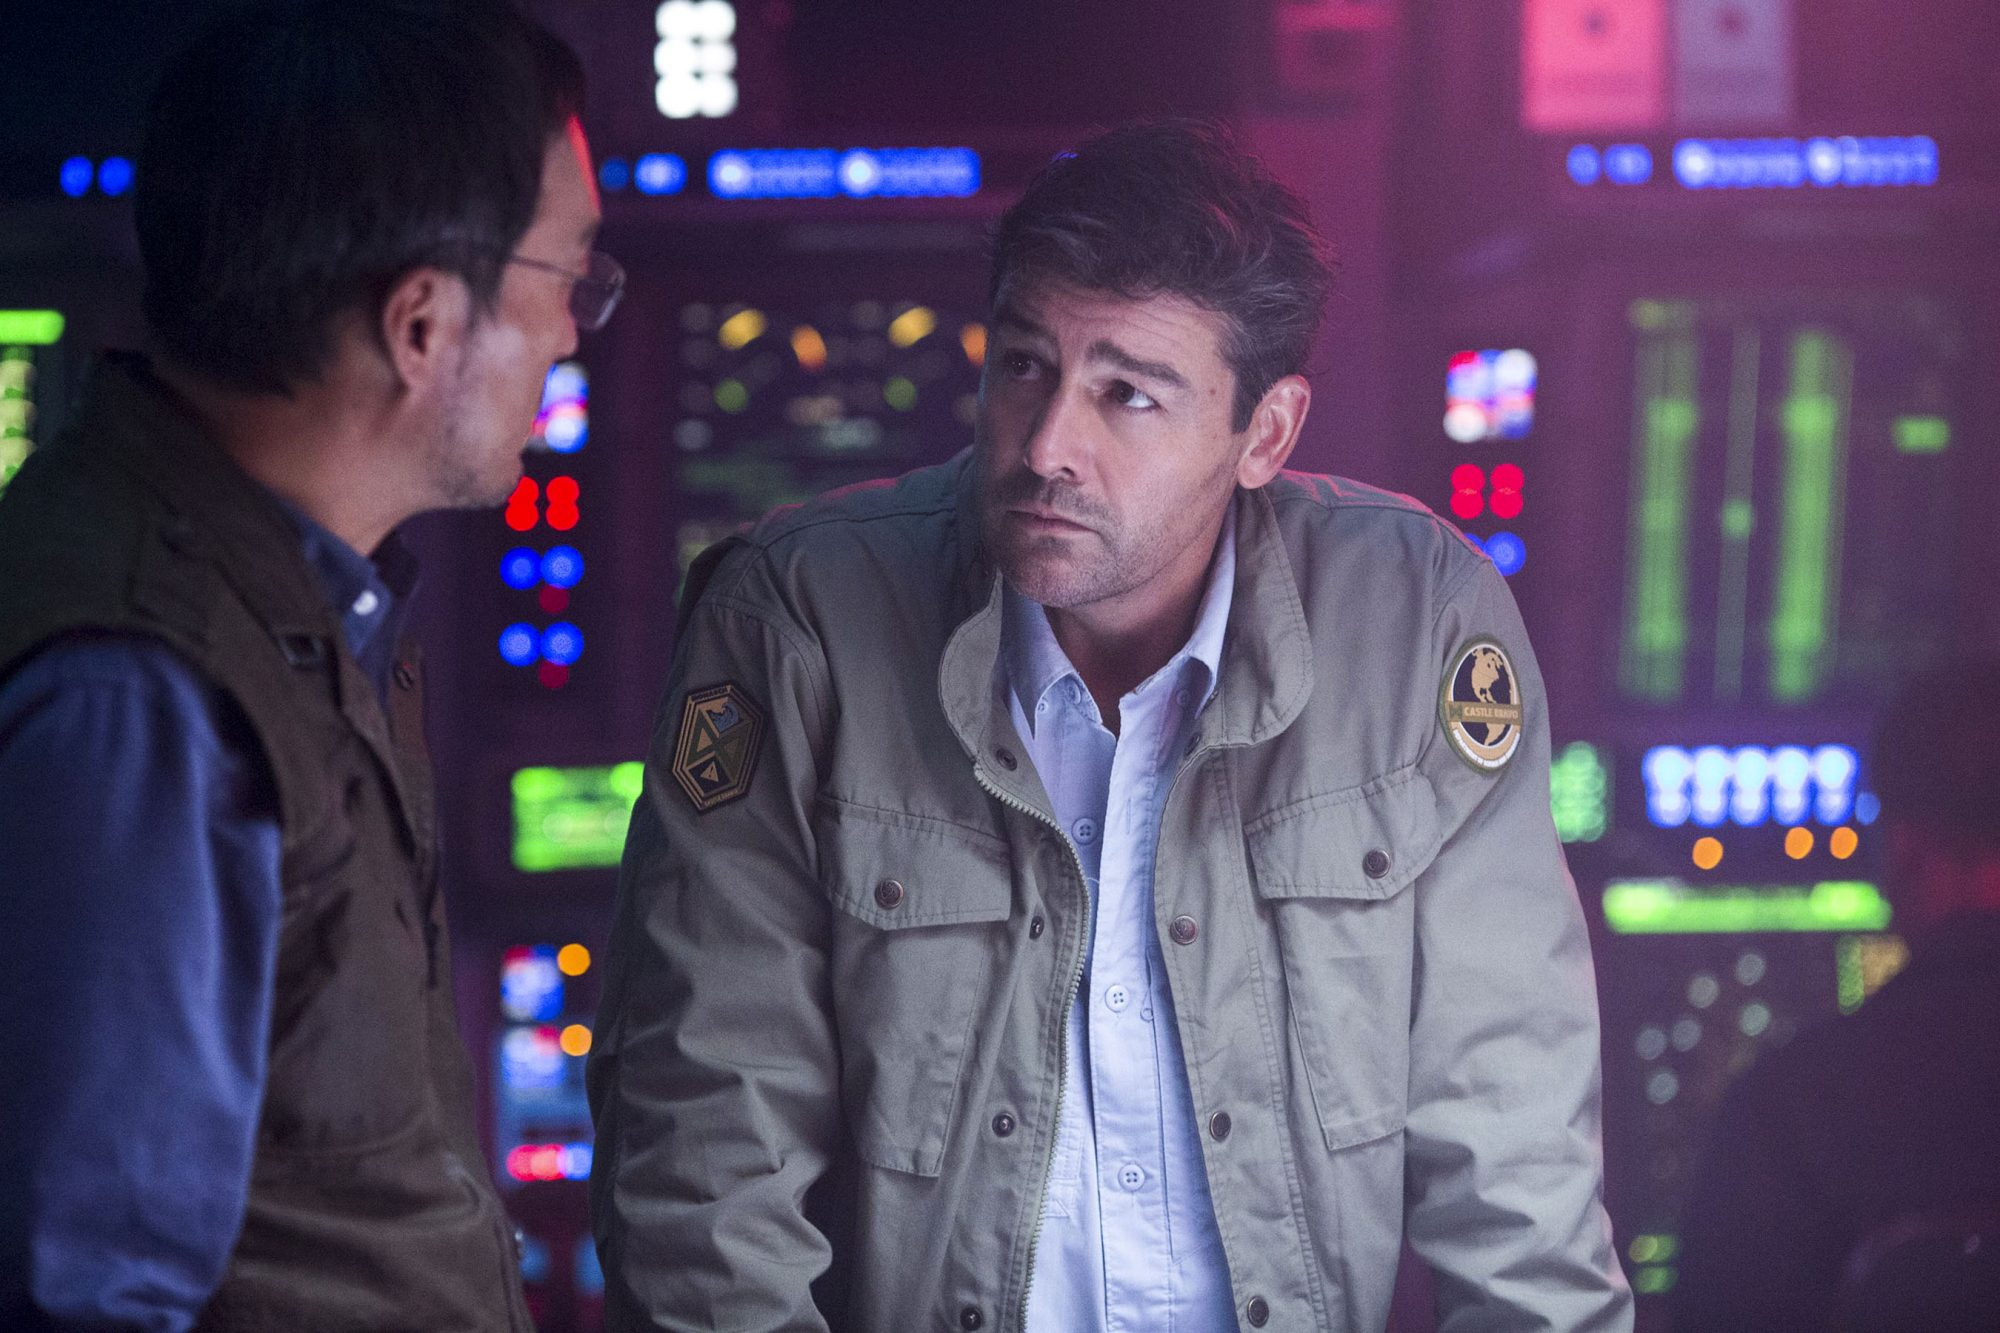 """GODZILLA: KING OF THE MONSTERS Copyright: © 2019 WARNER BROS. ENTERTAINMENT INC. AND LEGENDARY PICTURES PRODUCTIONS, LLC Photo Credit: Daniel McFadden Caption: (L-R) KEN WATANABE as Dr. Ishiro Serizawa and KYLE CHANDLER as Dr. Mark Russell in Warner Bros. Pictures' and Legendary Pictures' action adventure """"GODZILLA: KING OF THE MONSTERS,"""" a Warner Bros. Pictures release."""